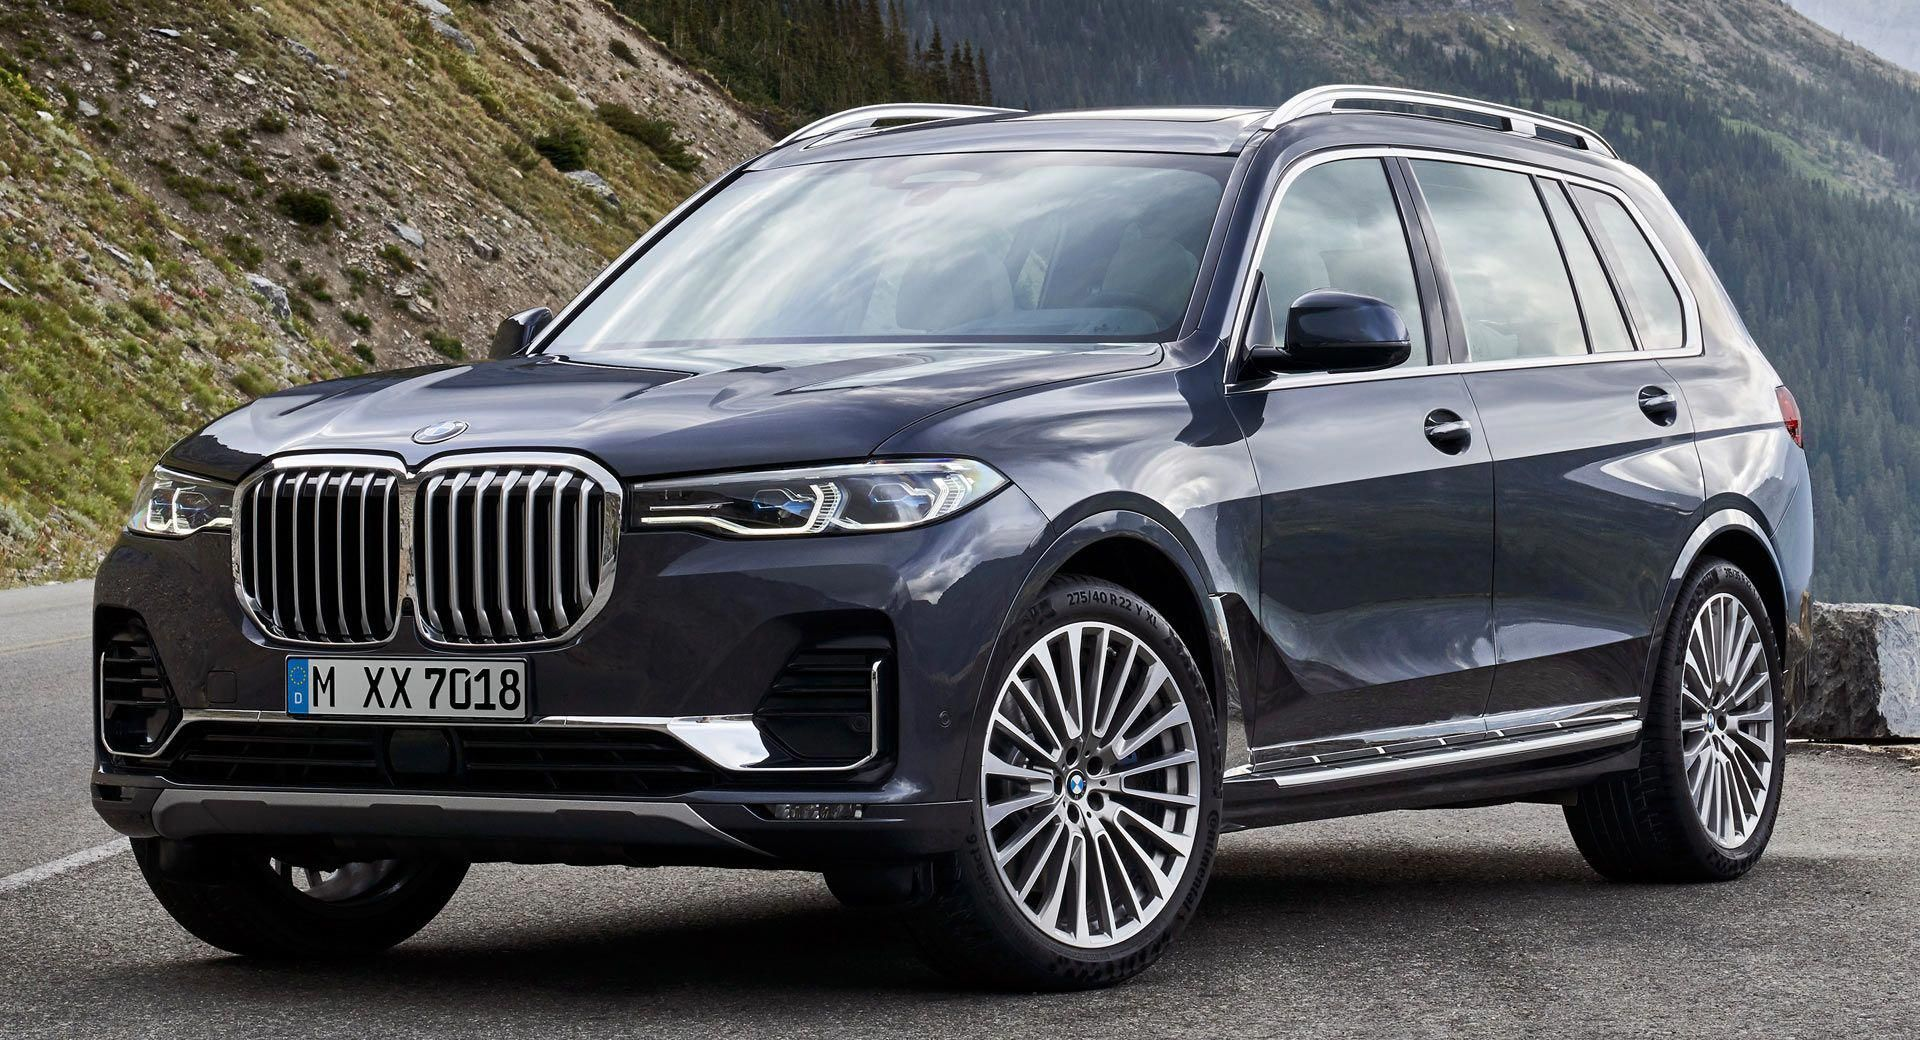 It S Bigger And Bolder Than The Bmw X5 But It Is Beautiful Bmwvintagecars Bmw X7 Best Suv Bmw